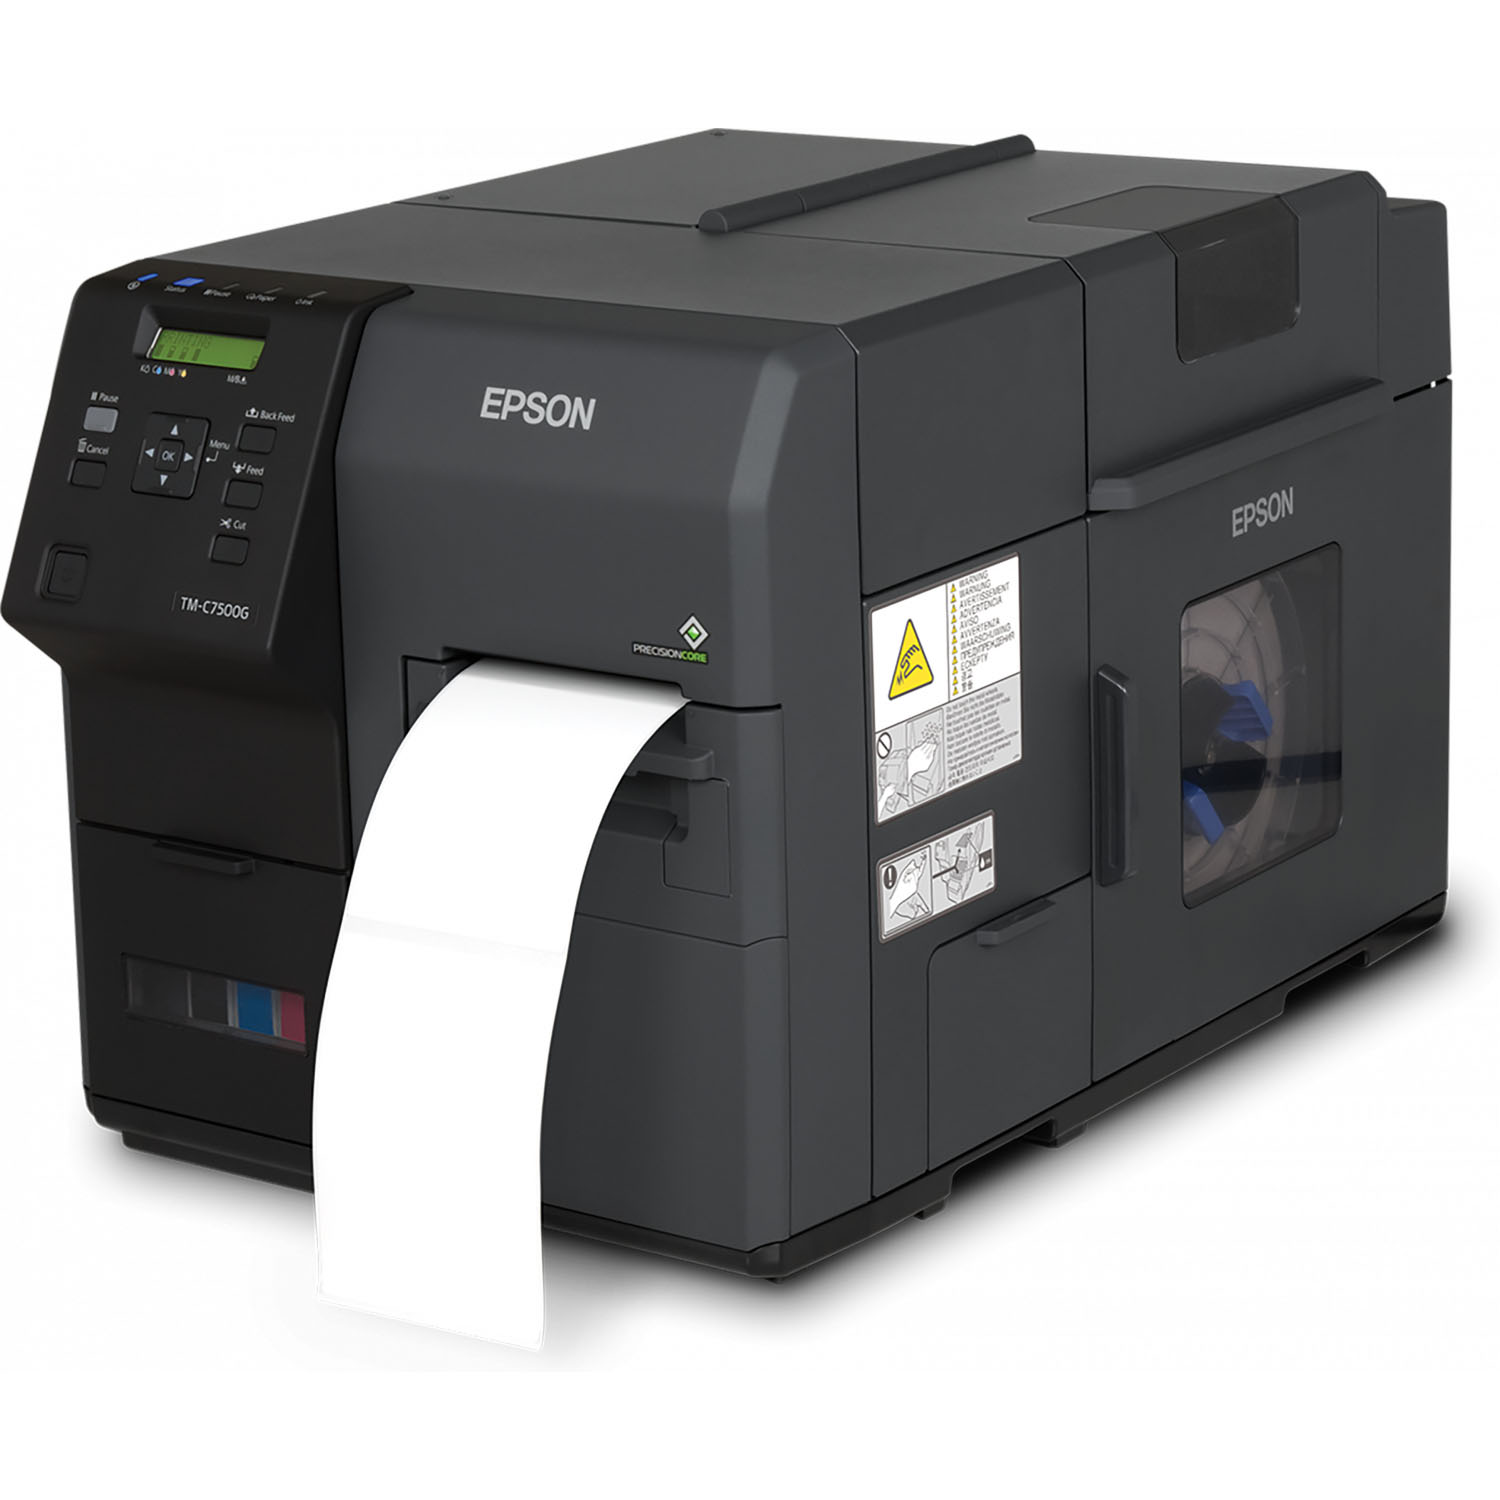 Image result for color label printer